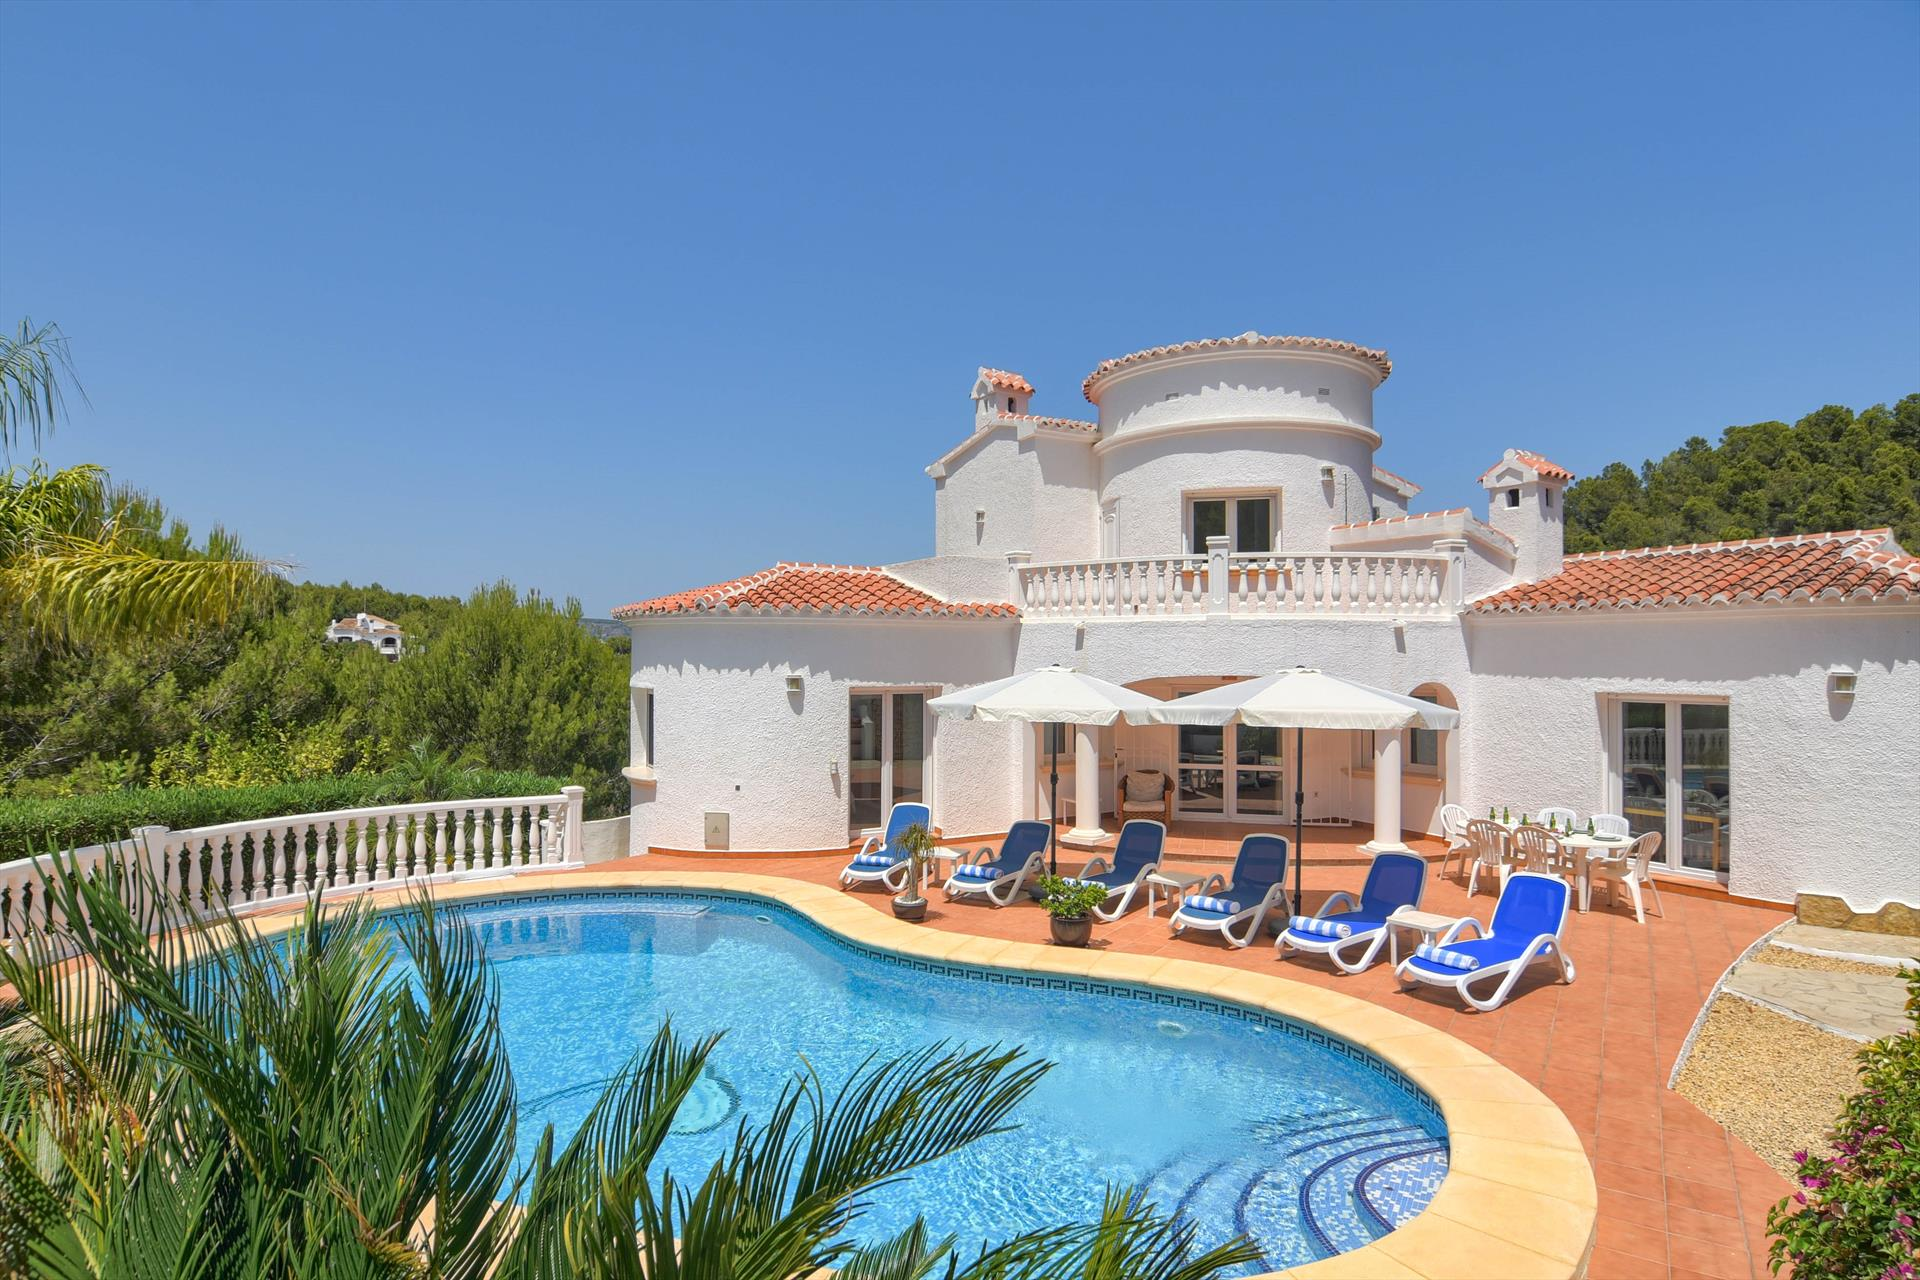 Codorniz 4 pax, Beautiful and comfortable villa in Javea, on the Costa Blanca, Spain  with private pool for 4 persons.....